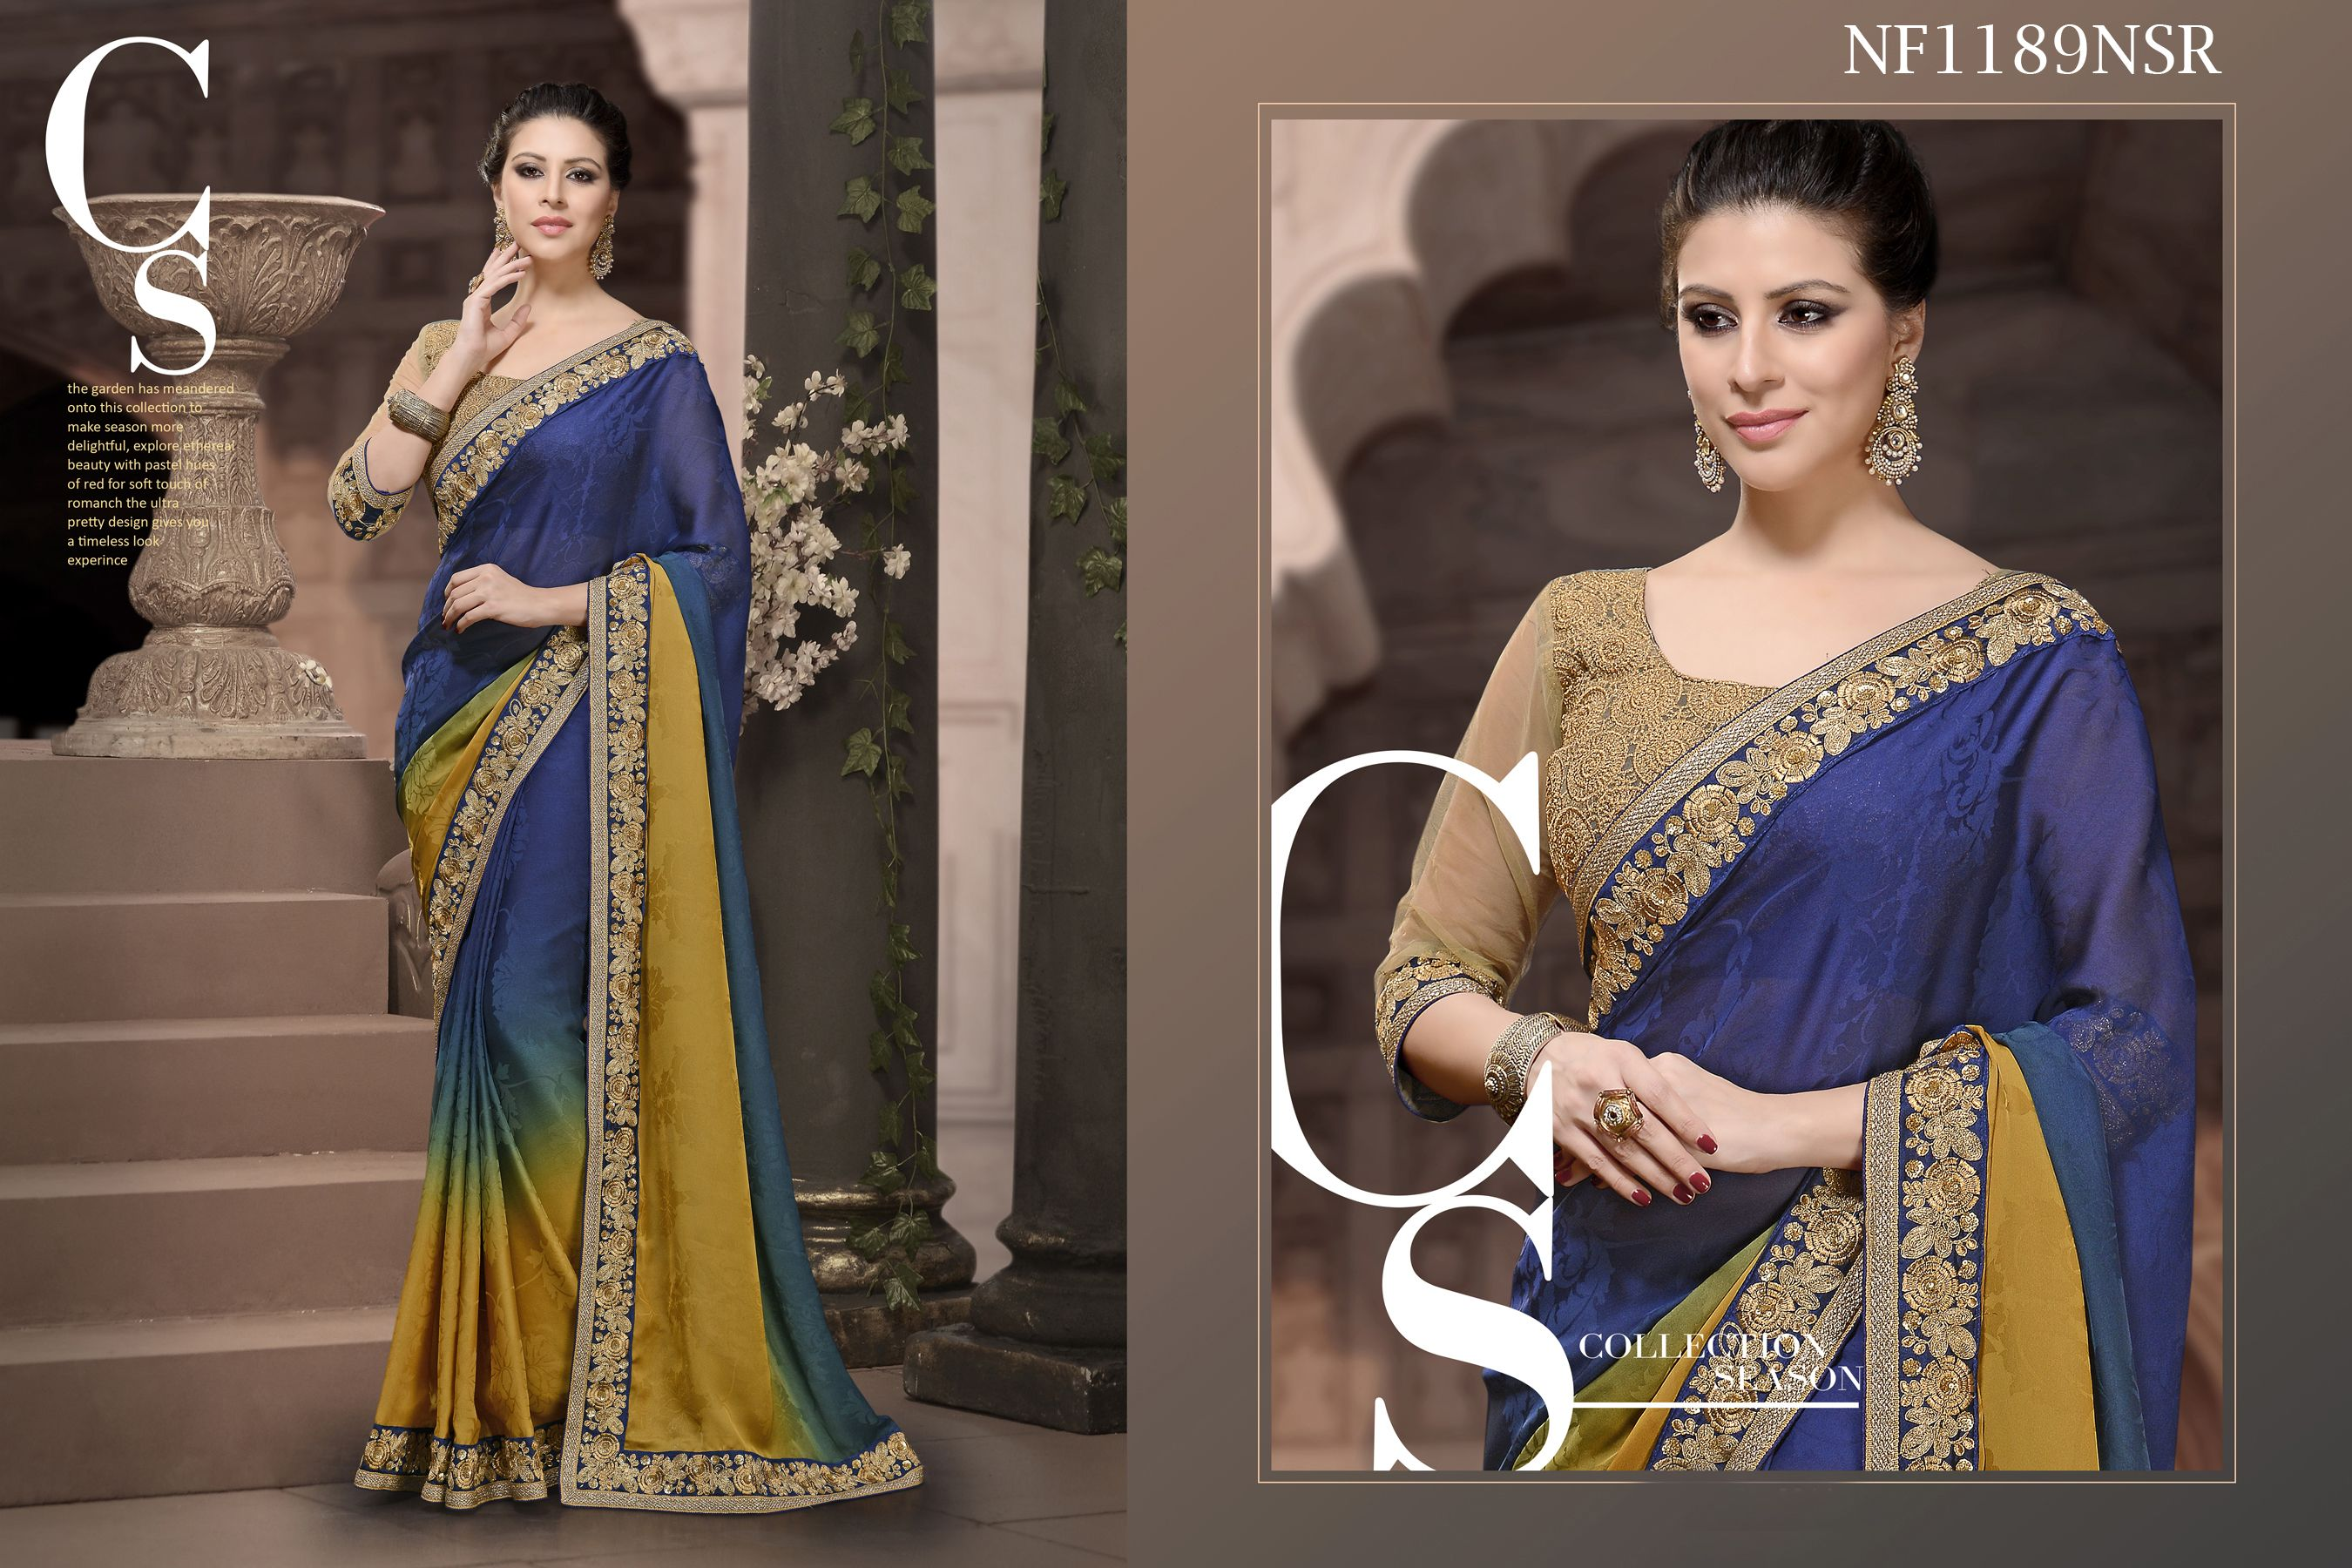 #Lavish #Saree #Shaded #In #Satin #And #Jacquard #Fabric #With #Dupion #Blouse #Piece $93.09 www.fashionumang.com